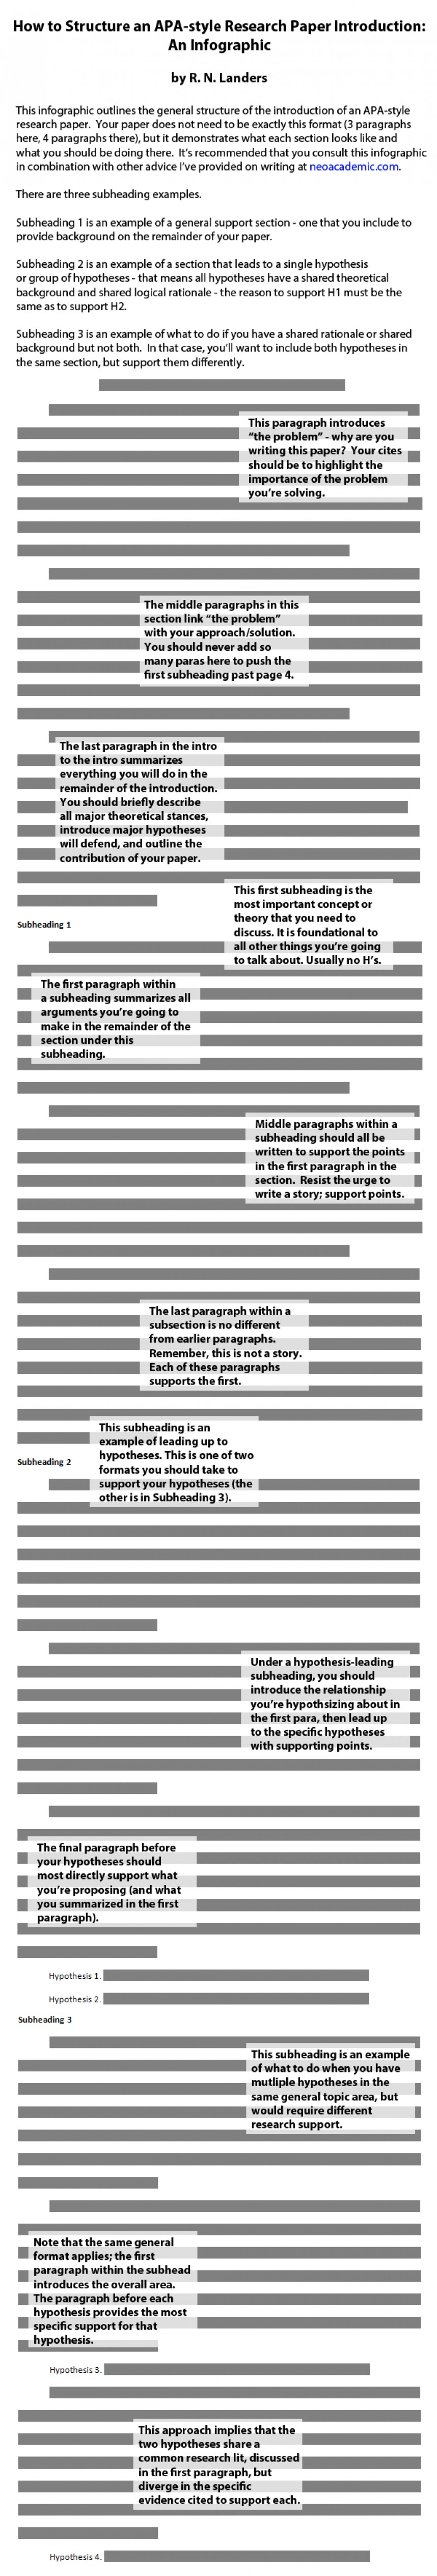 007 Intro Infographic2 Research Paper Writingn Introduction To Top Writing An A How Write Scientific Apa Ppt